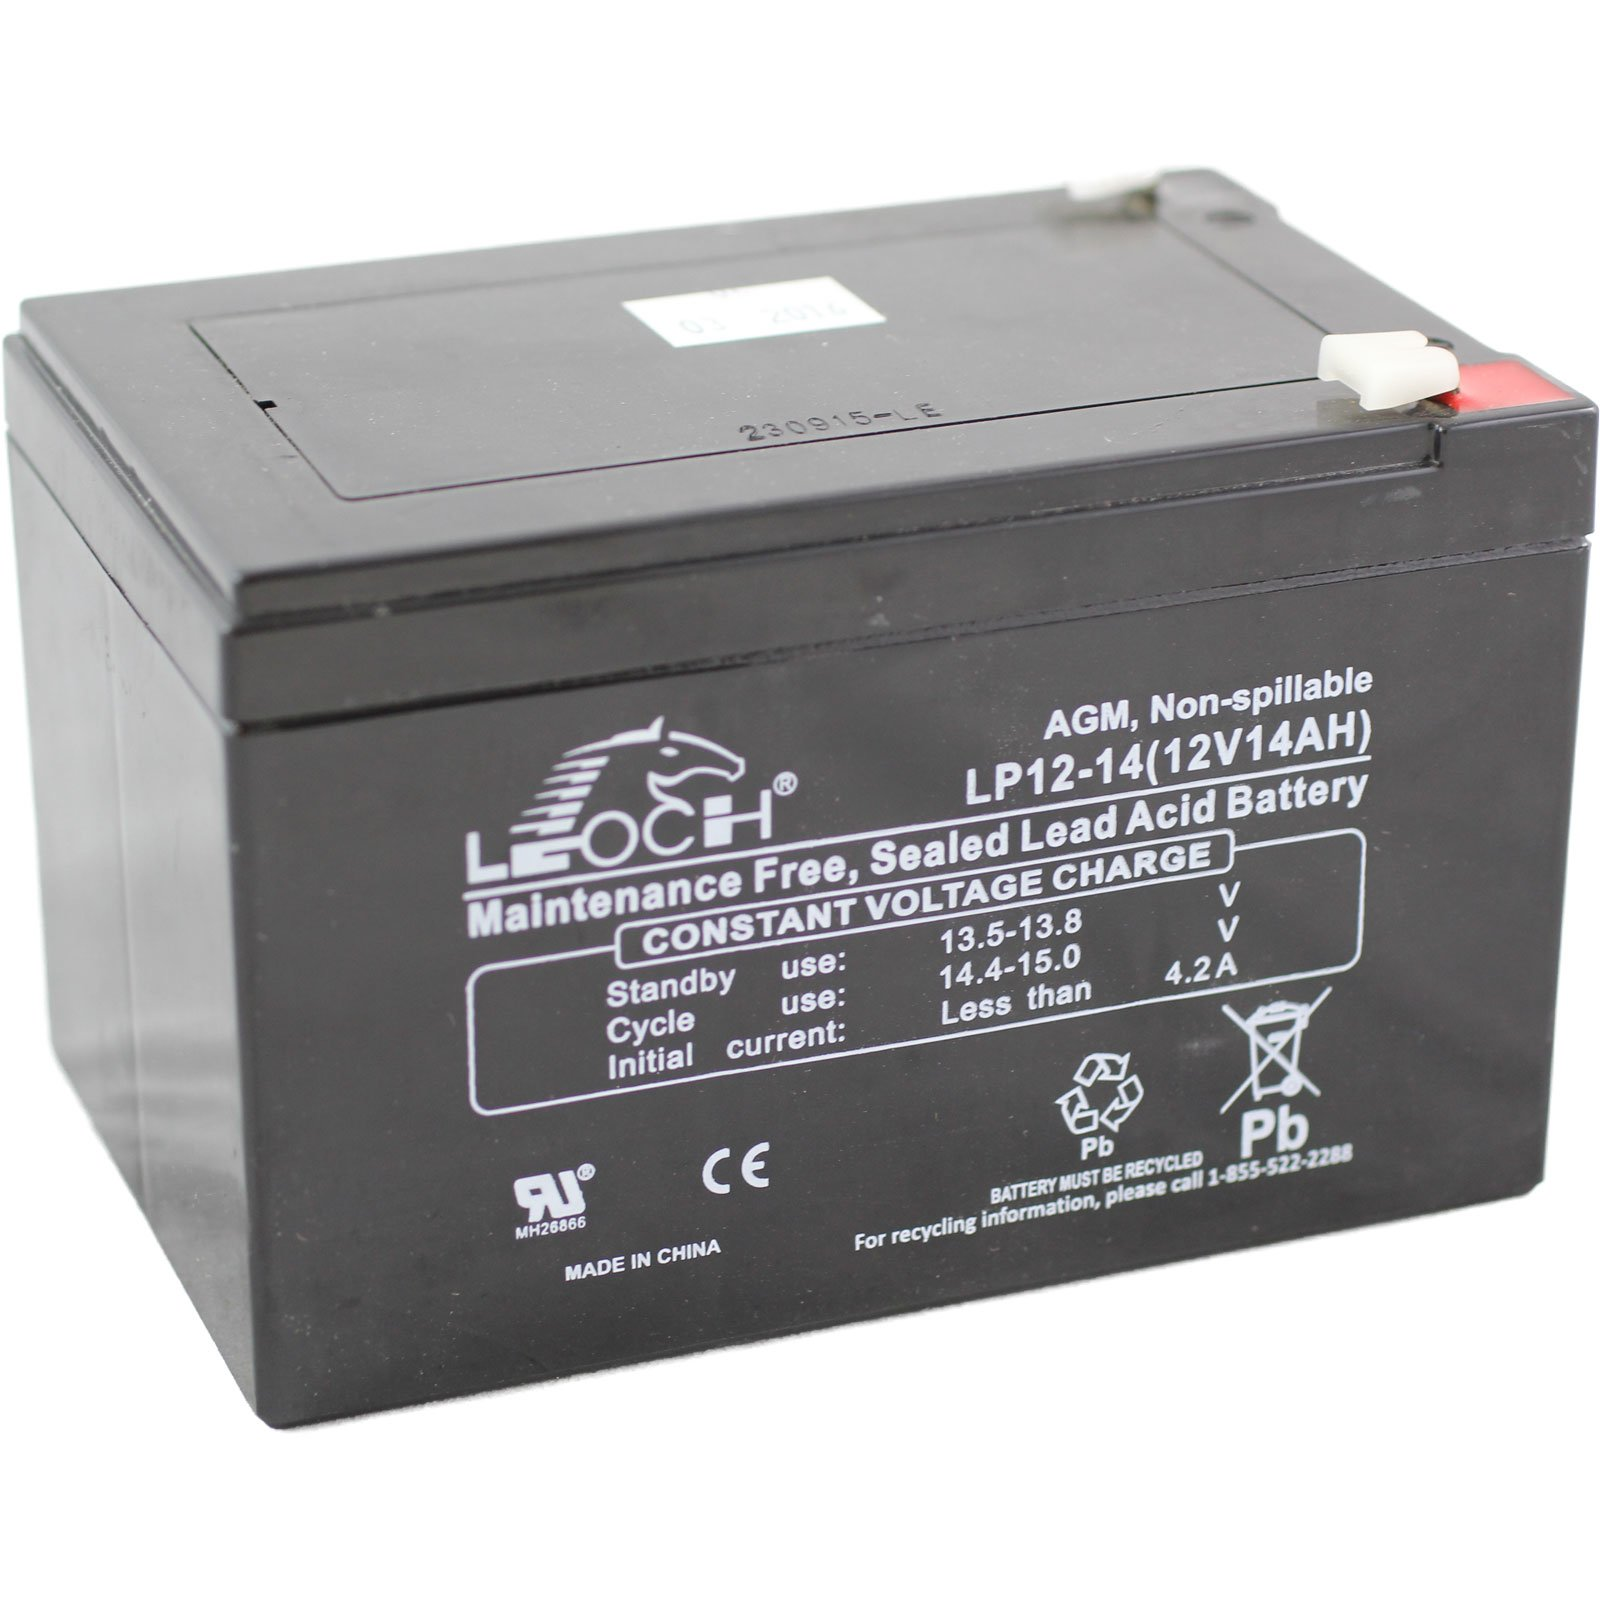 12 Volt 14 Ah Sealed Lead Acid Rechargeable Battery - F2